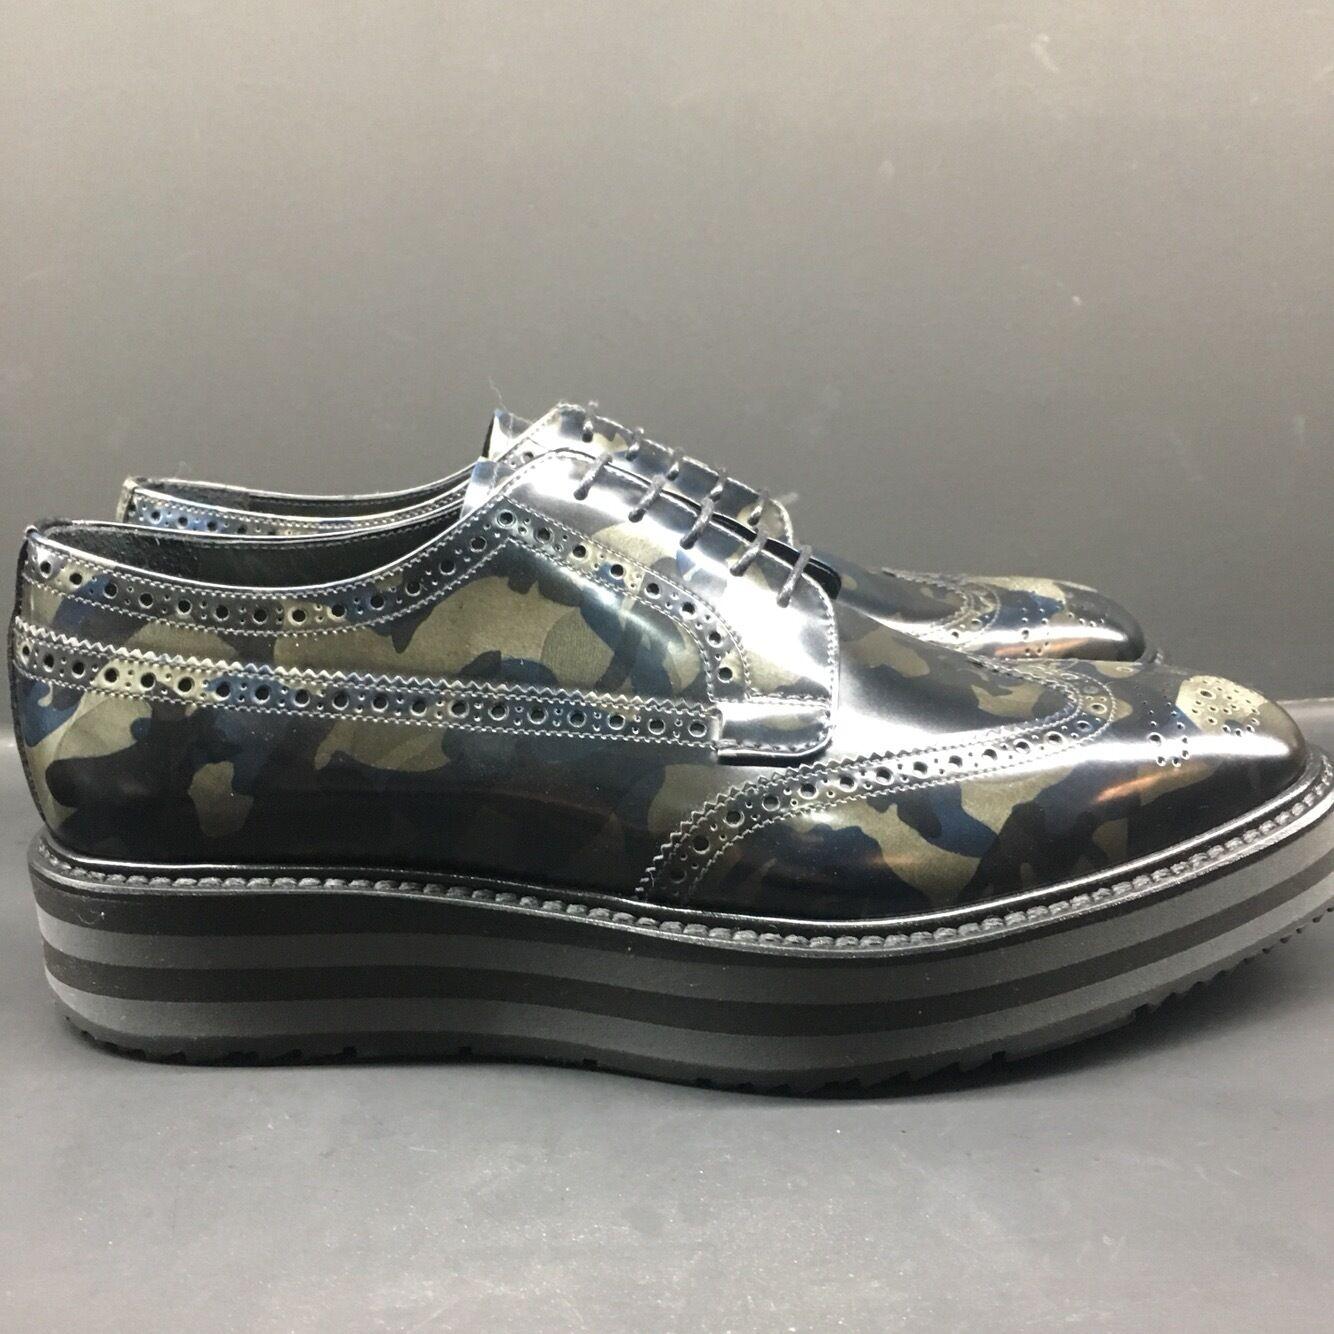 Prada Derby Camo Shoes Men's Creepers Leather Sneakers Size 5-9 2EG015 F073A